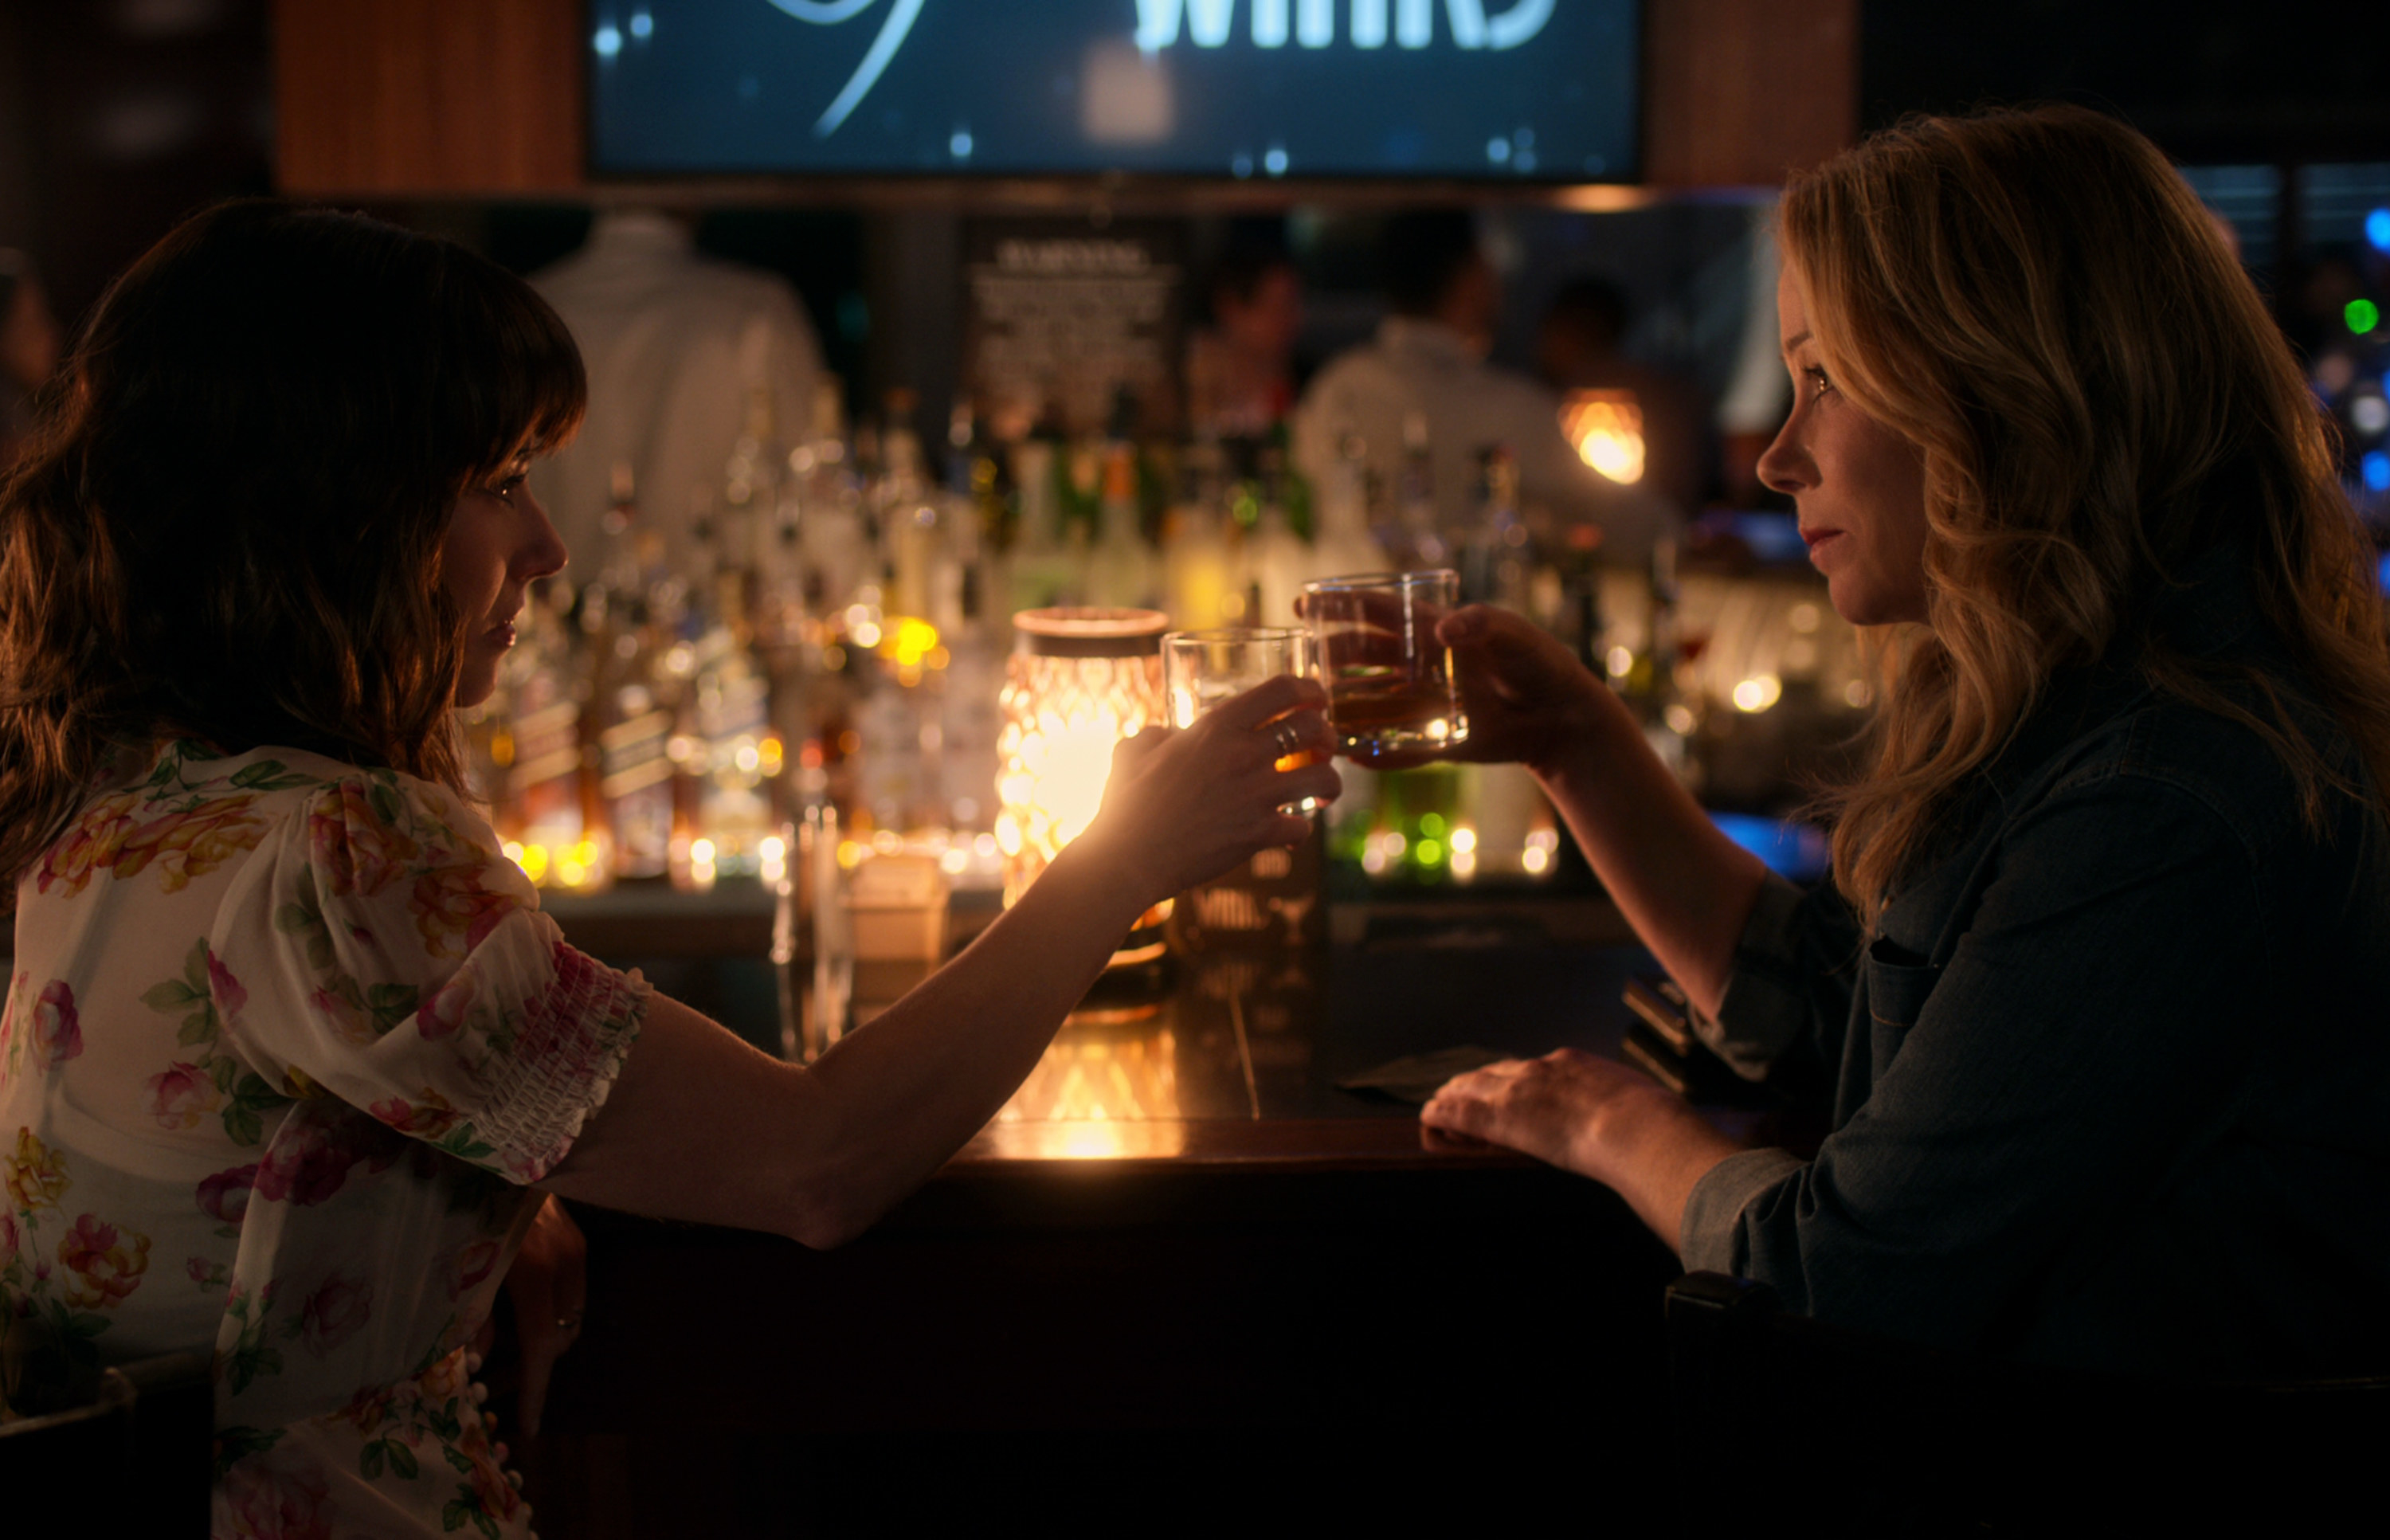 Jen and Judy drinking together at a bar